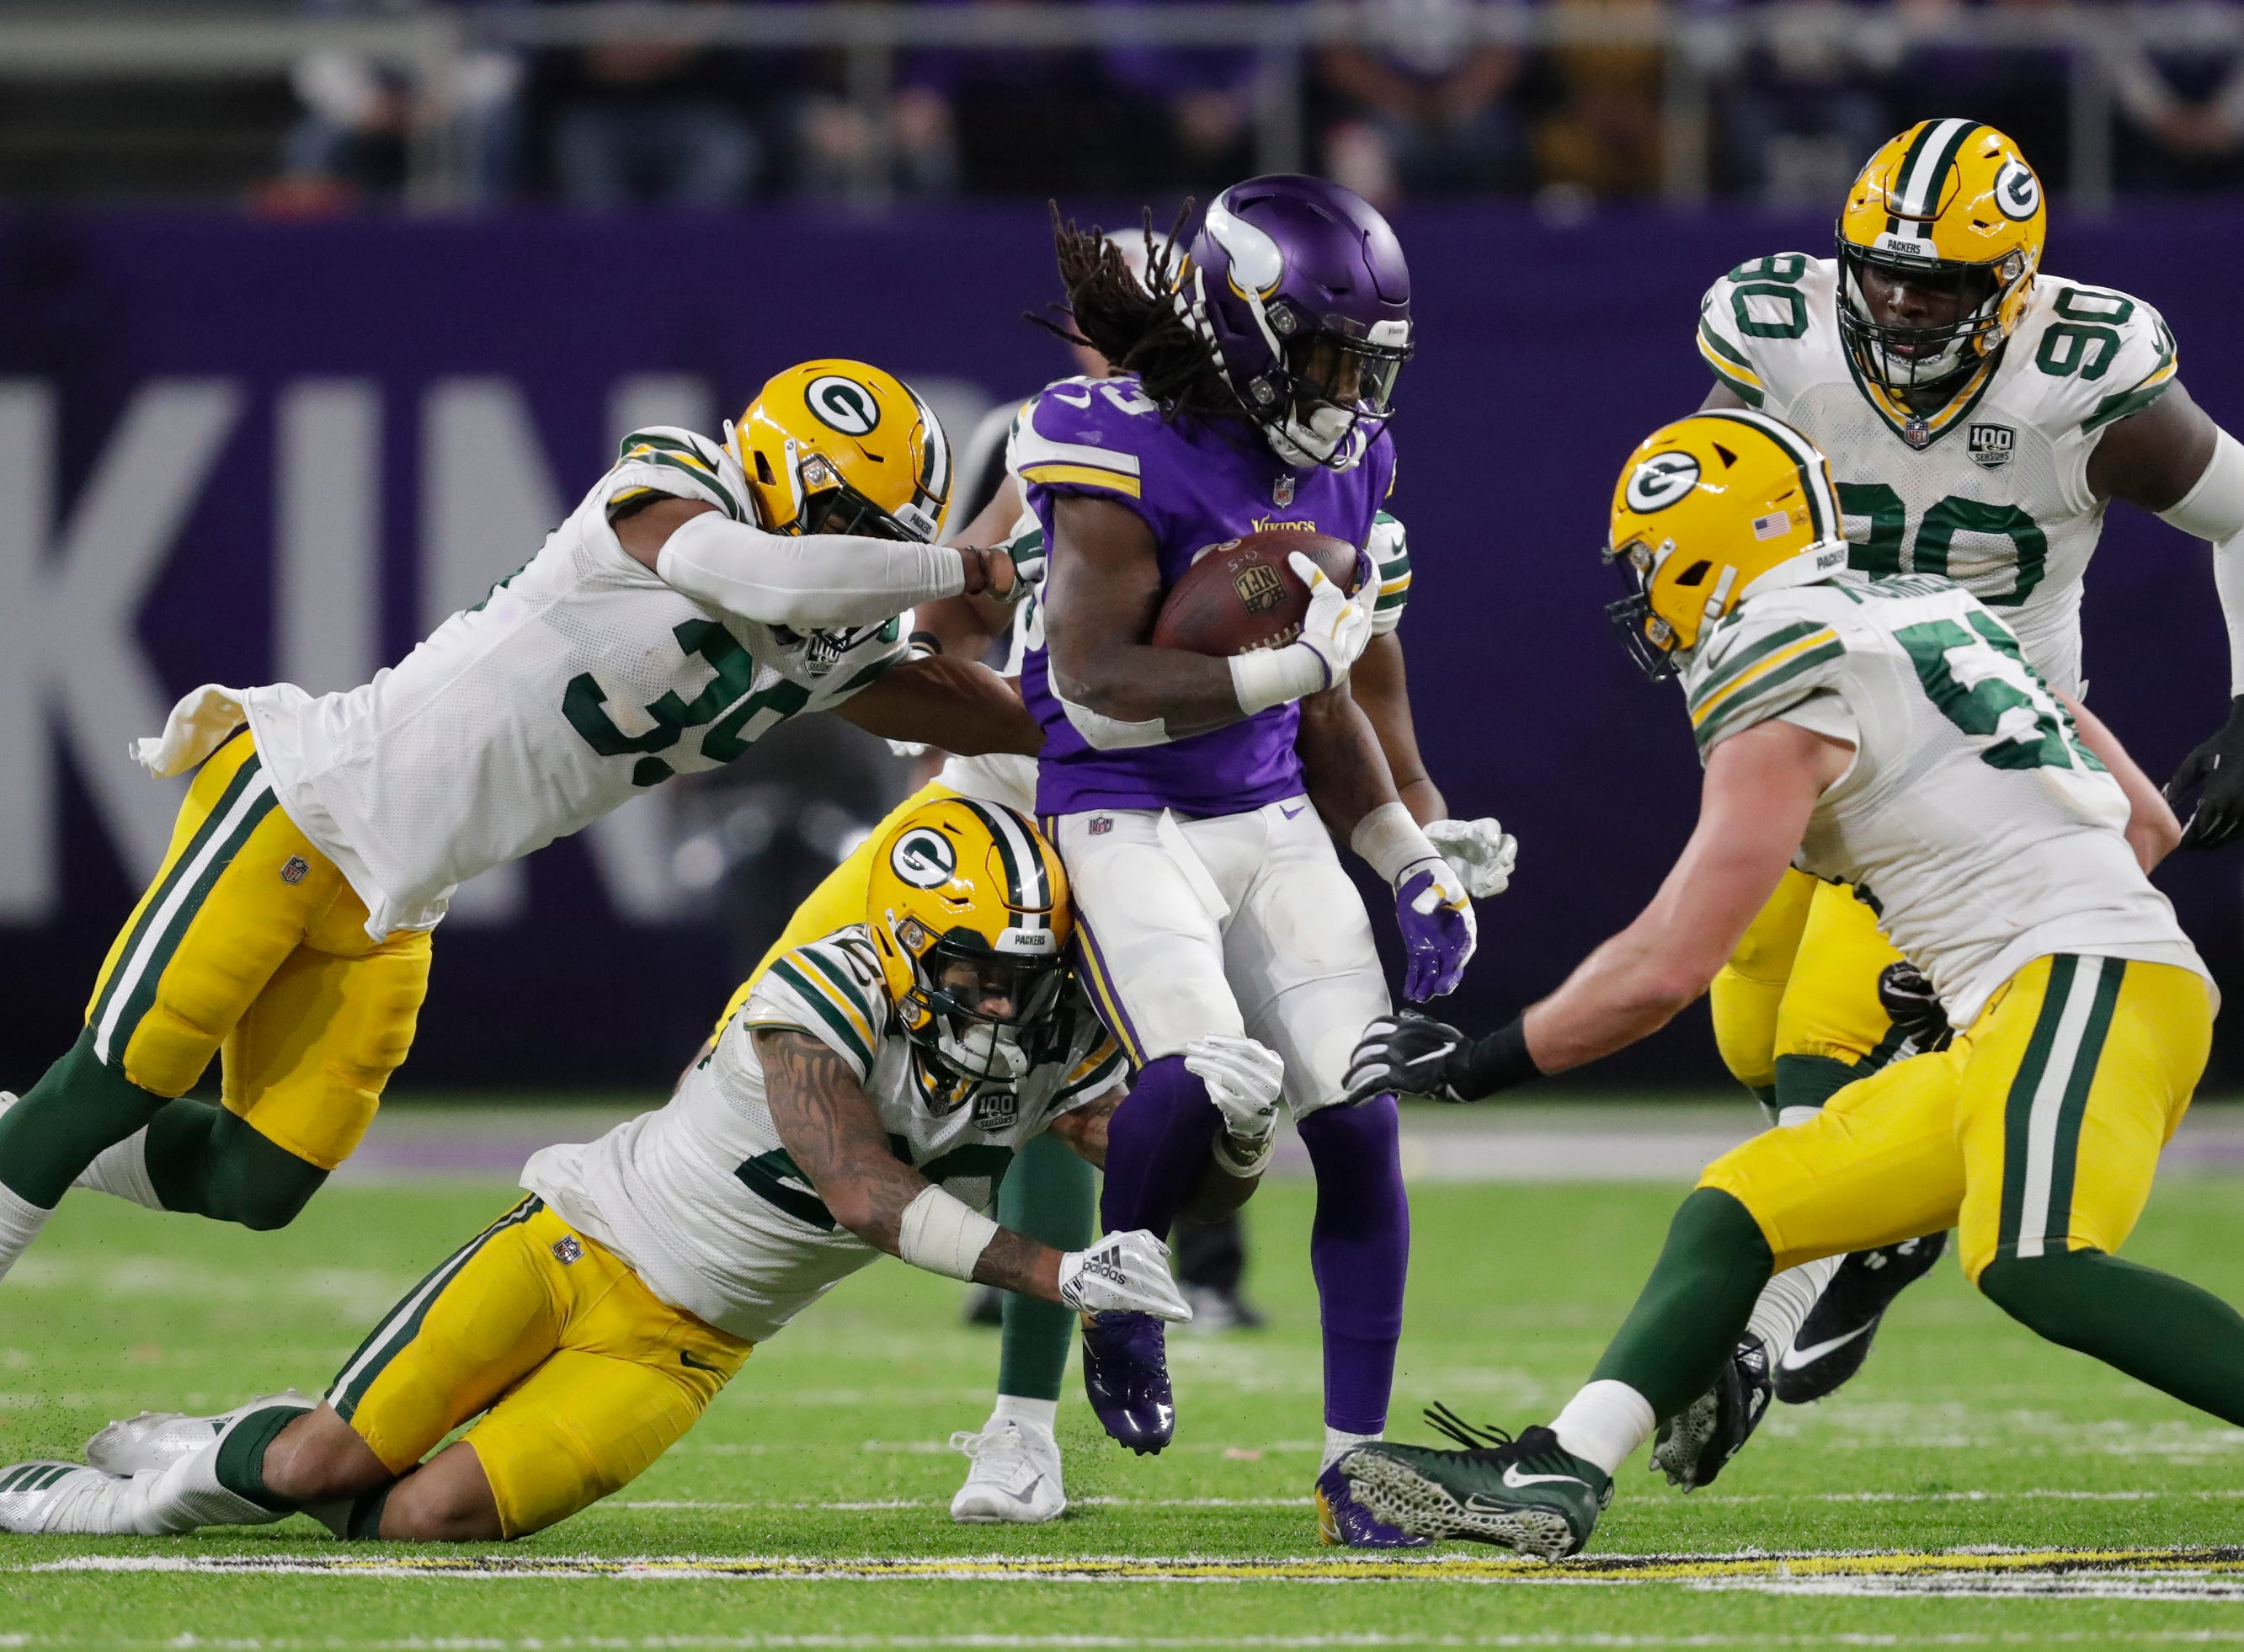 Minnesota Vikings running back Dalvin Cook (33) gainst yardage against the Packers defense in the third quarter during their football game Sunday, November 25, 2018, at U.S. Bank Stadium in Minneapolis, Minn. 